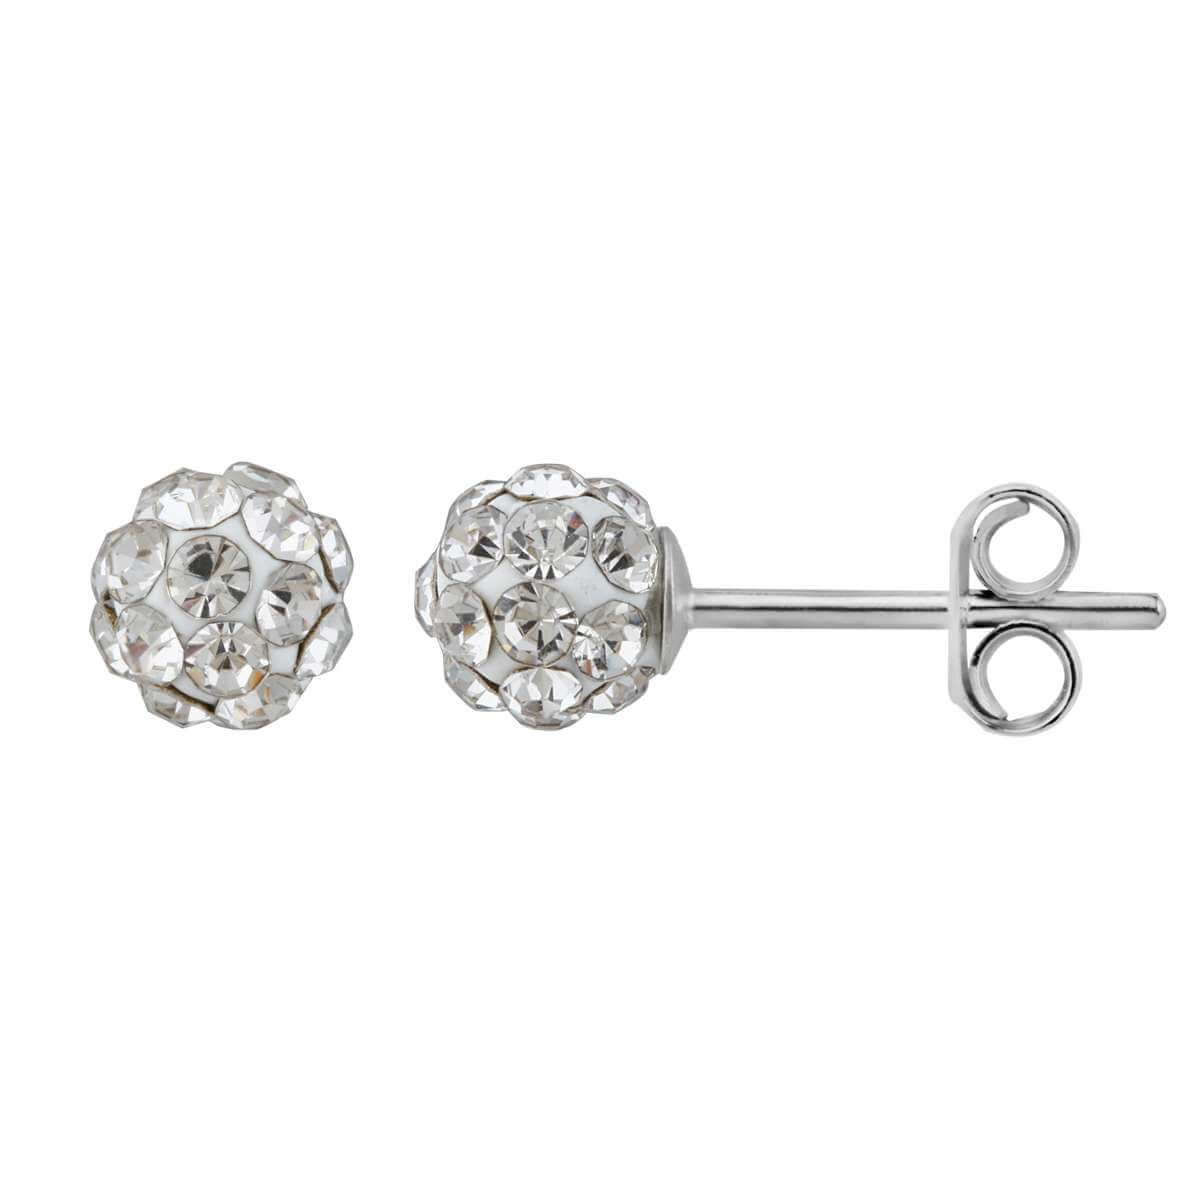 Sterling Silver & Clear CZ 5mm Crystal Ball Stud Earrings